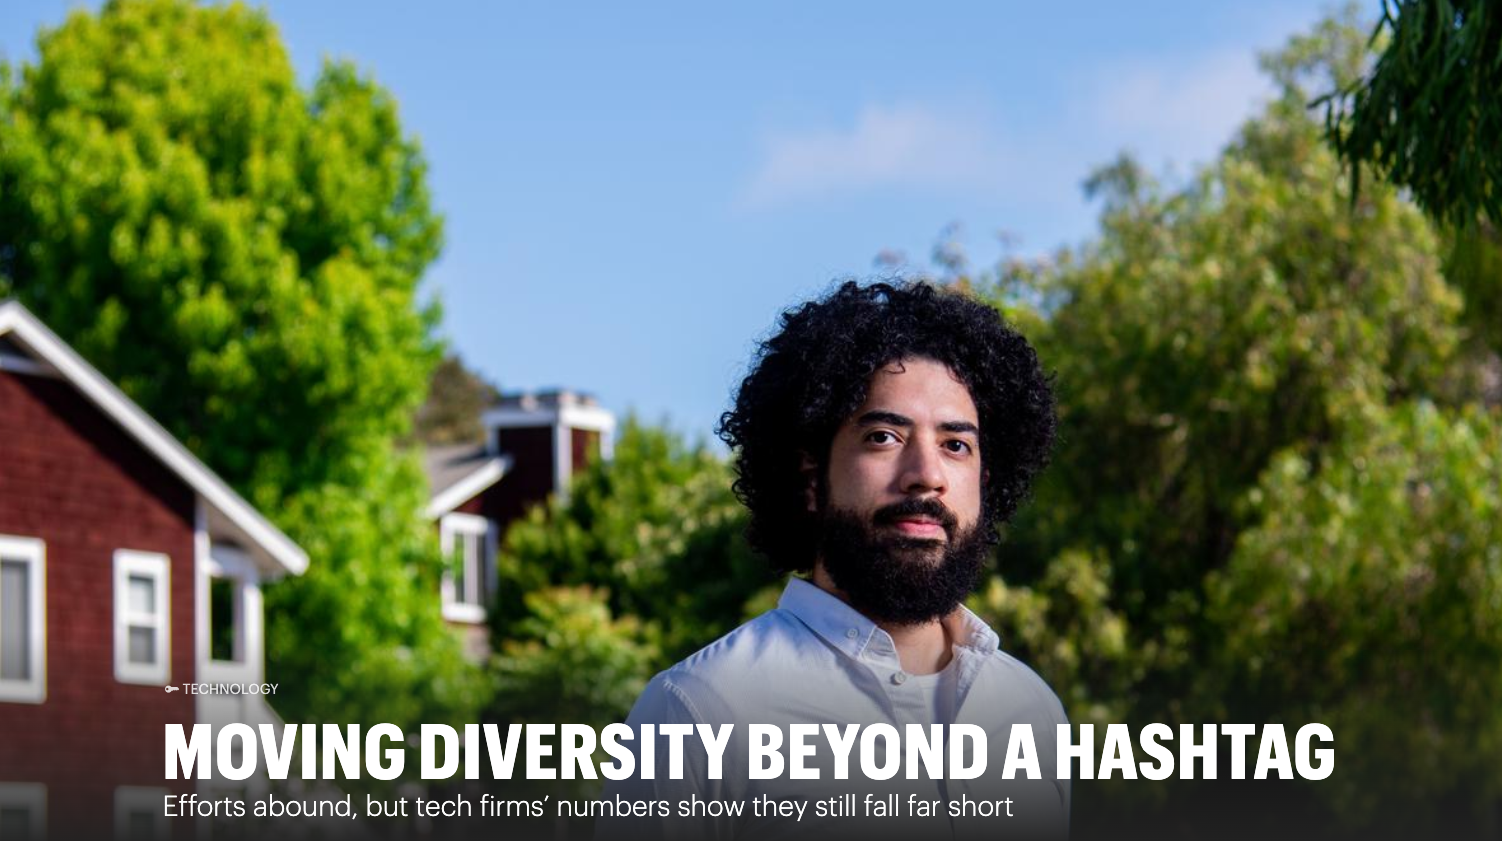 Moving Diversity Beyond a Hashtag